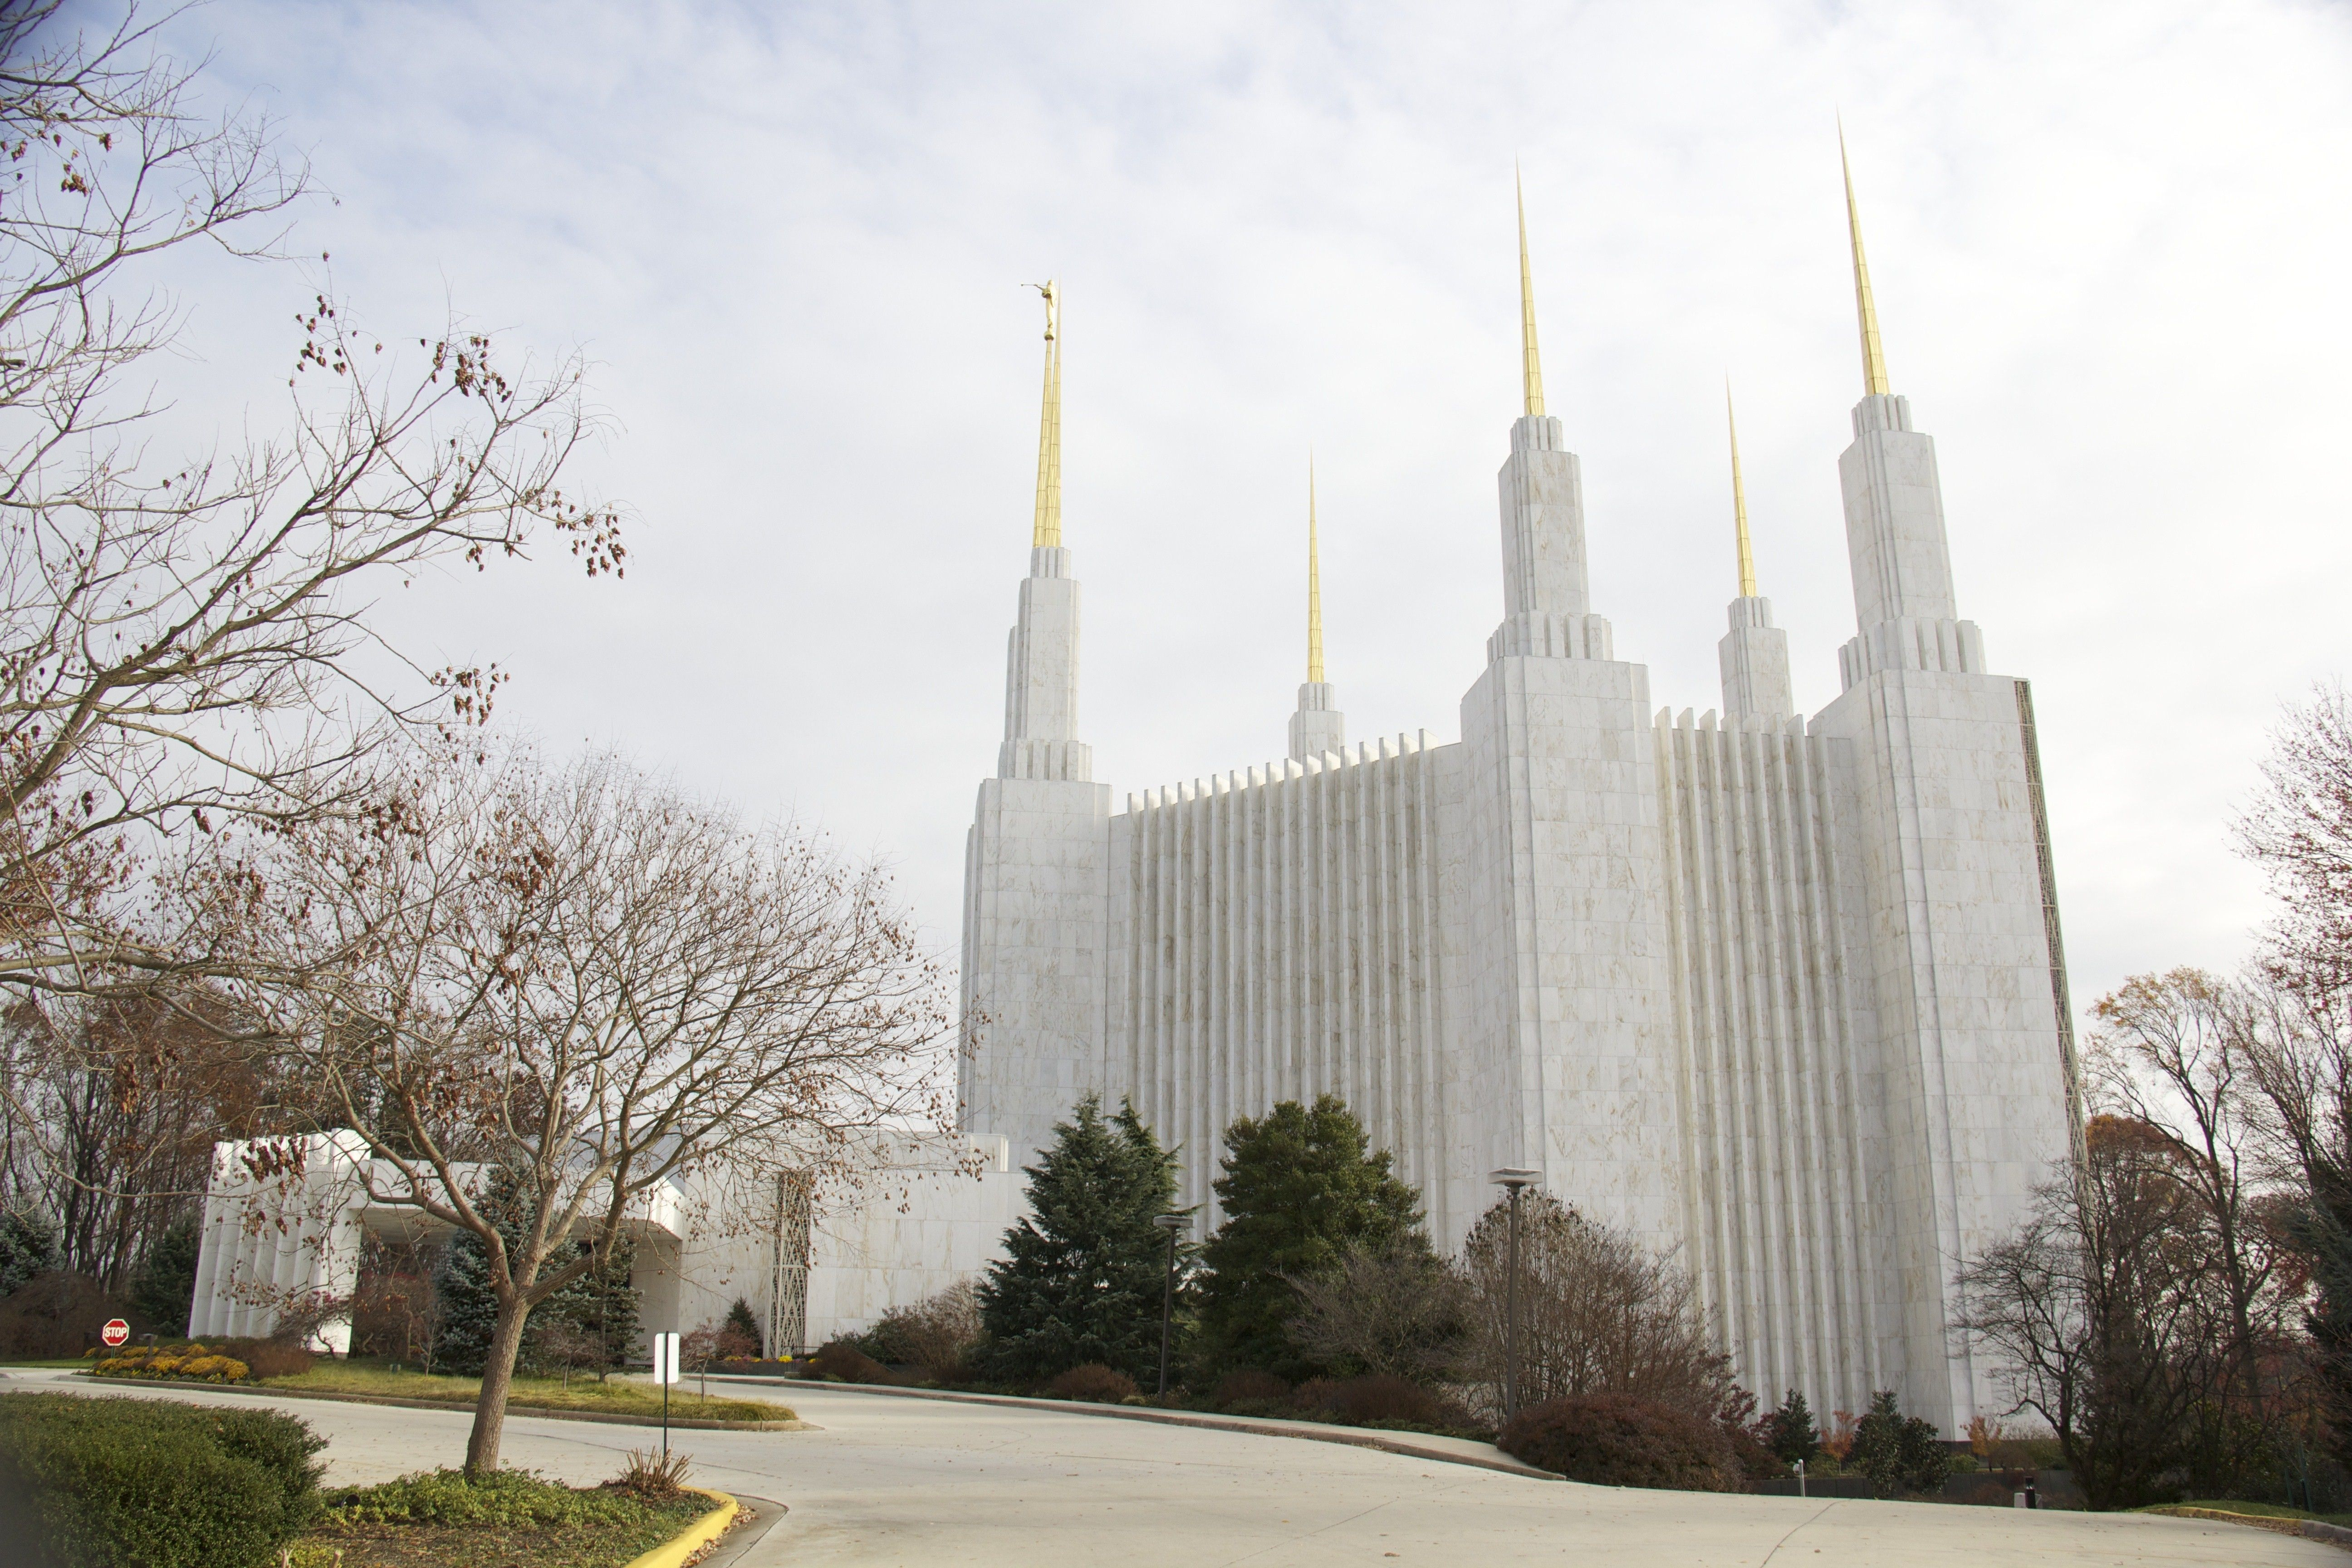 The Washington D.C. Temple during winter, with the entrance and scenery.